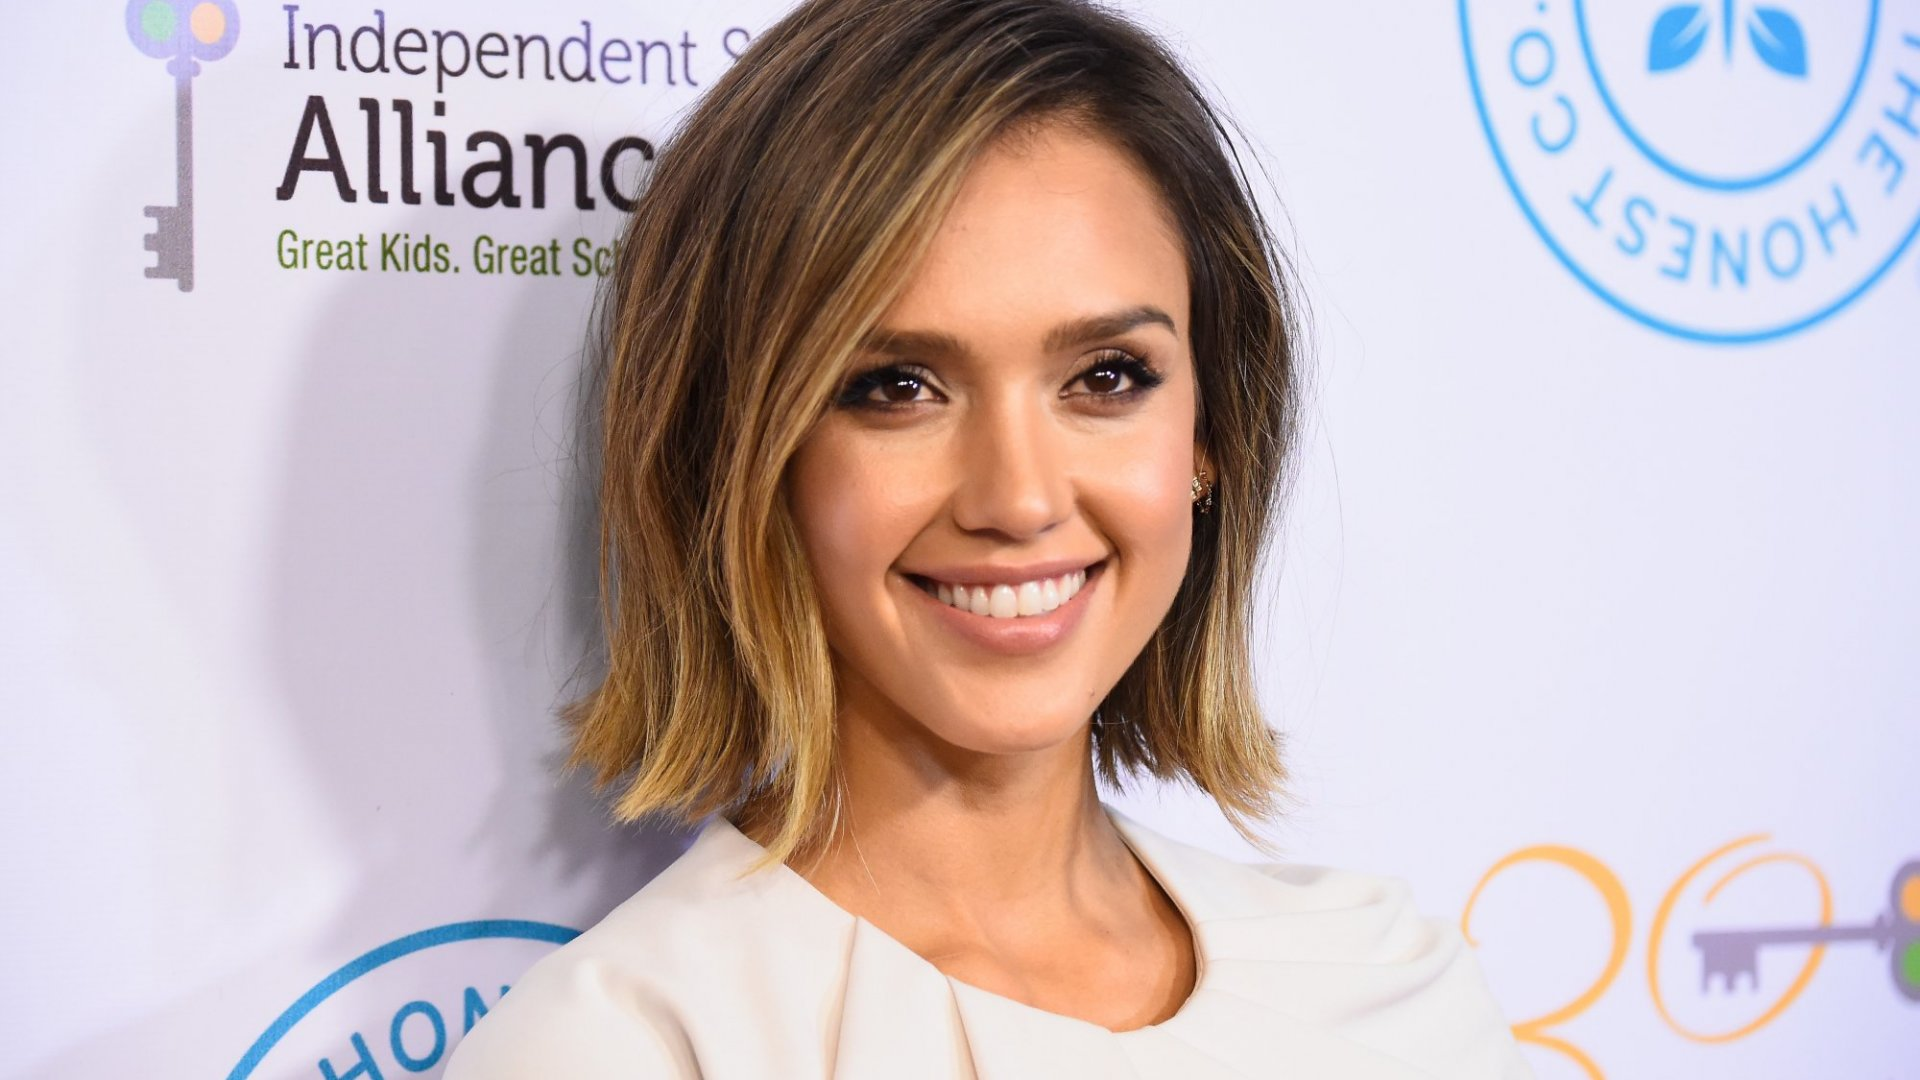 Actress Jessica Alba co-founded Honest Company in 2008. The company reached $150 million in revenue in 2014.